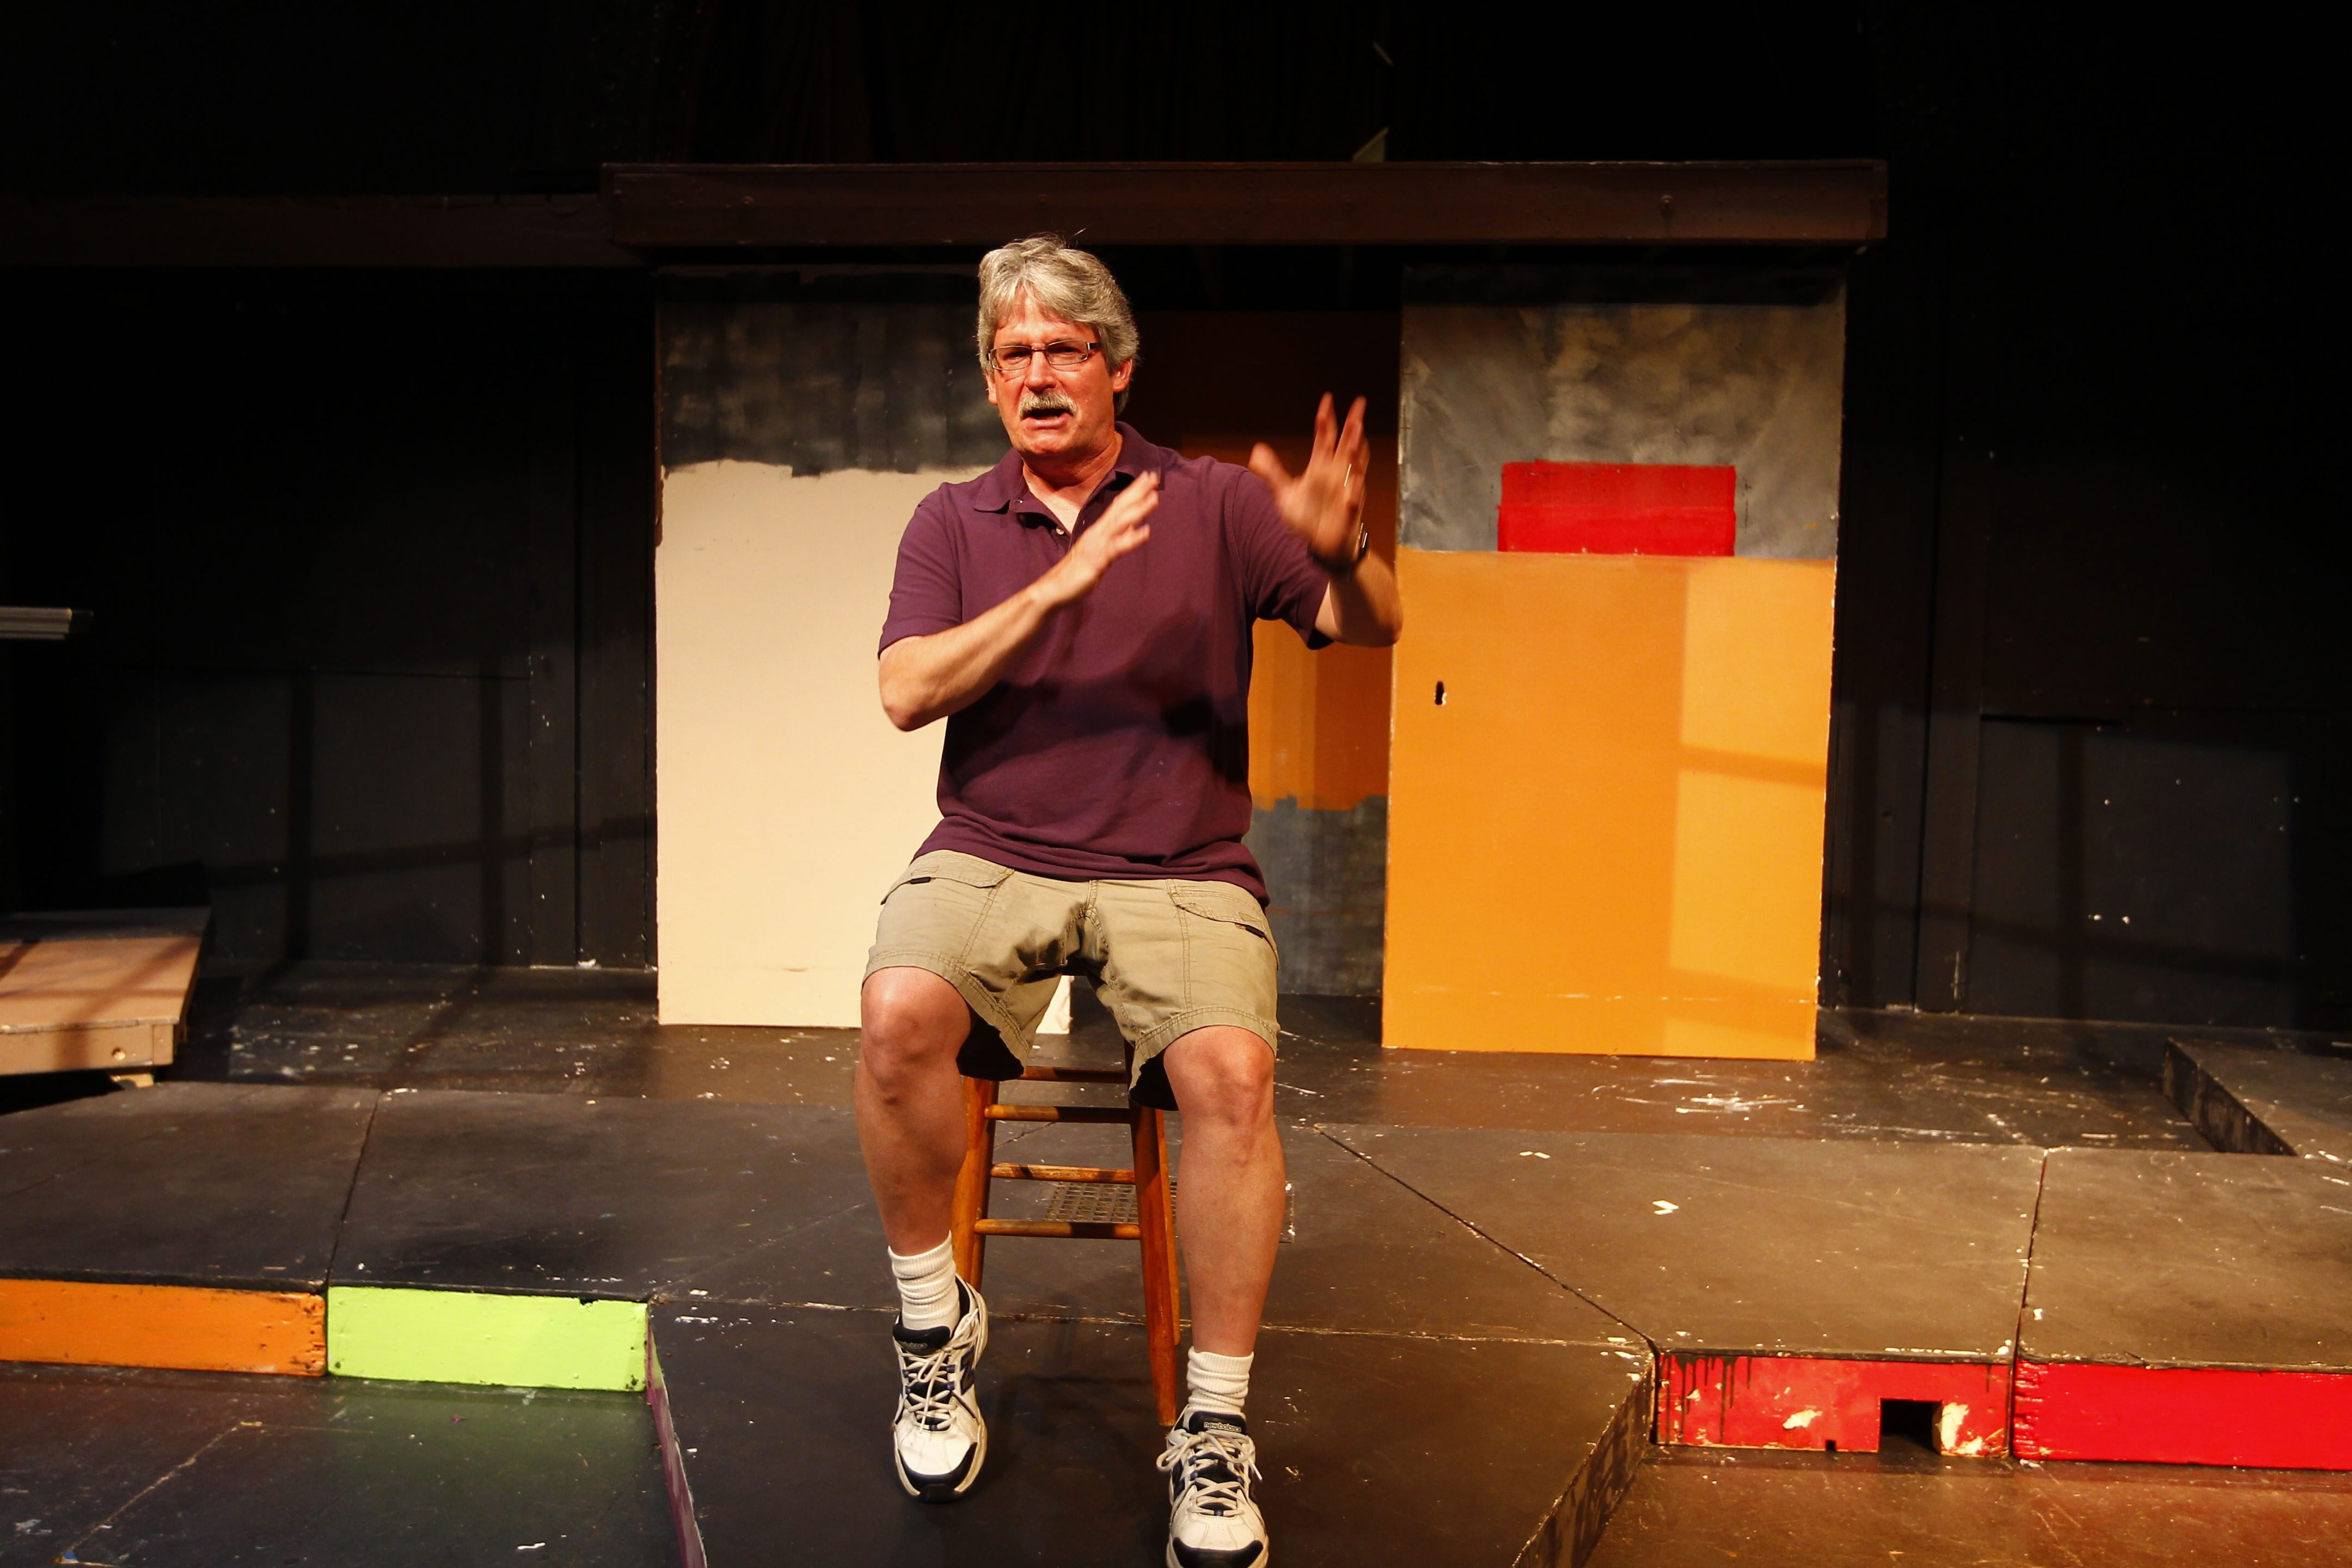 L. Don Swartz, director of Starry Night Theatre troupe in the Ghostlight Theatre, has been entertaining fans for more than 30 years with plays set in the Buffalo area.